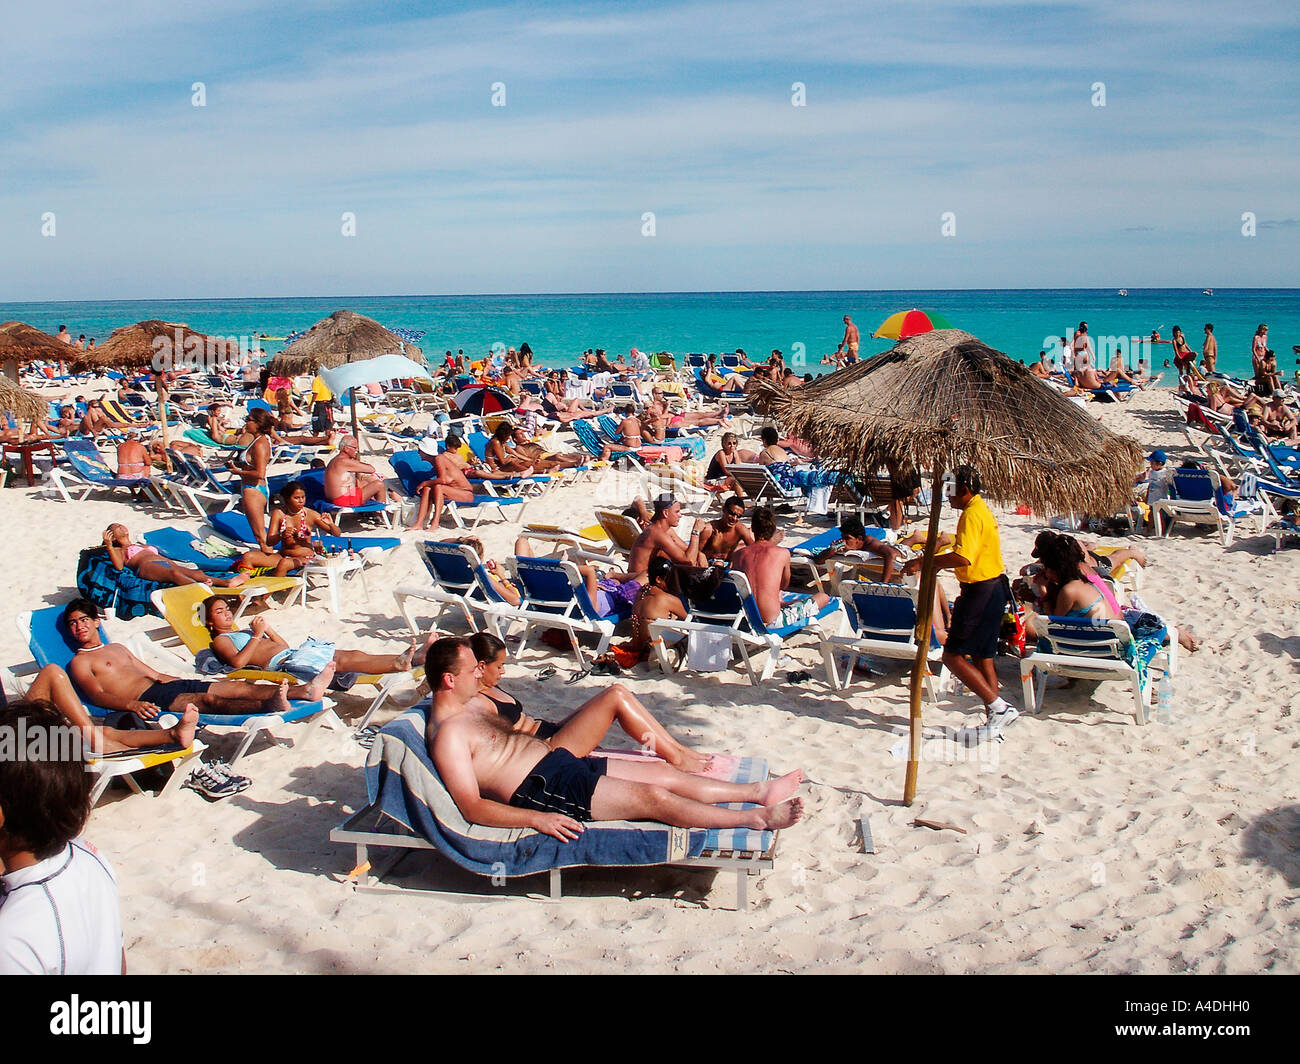 crowded beach at christmas in playa del carmen cancun mexico stock image